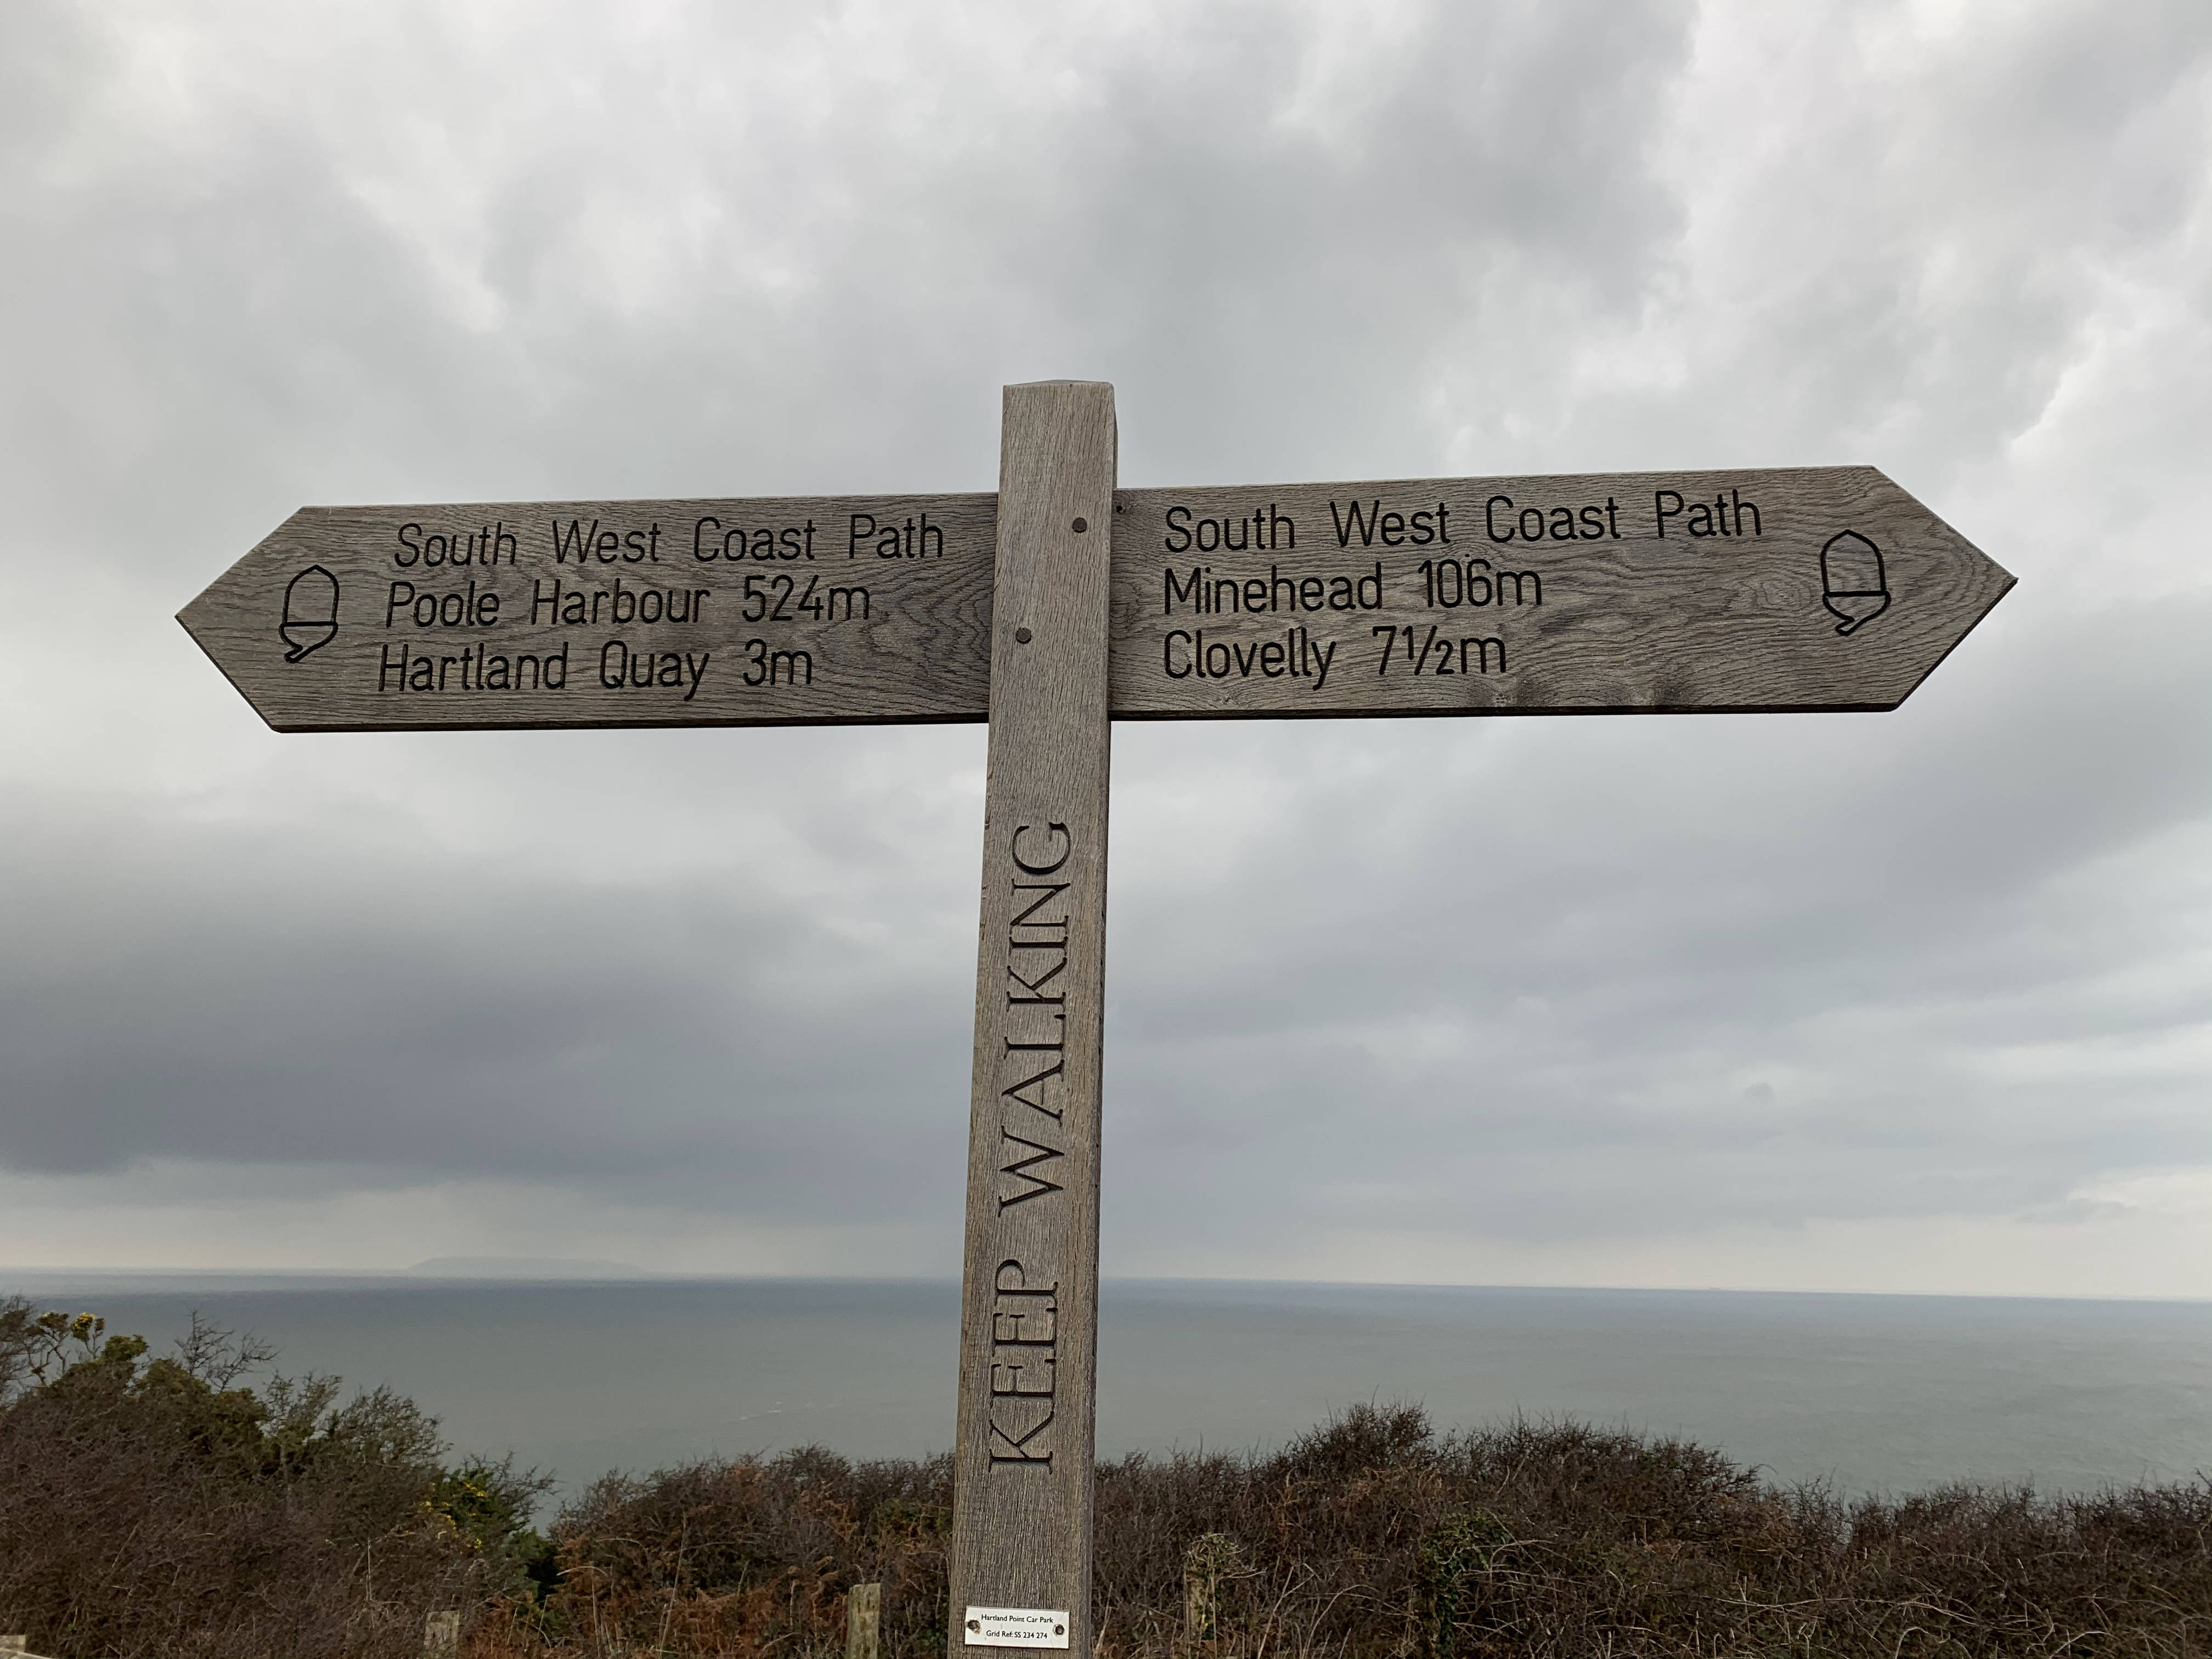 Signposting along on The South West Coast Path from Clovelly to Hartland Quay